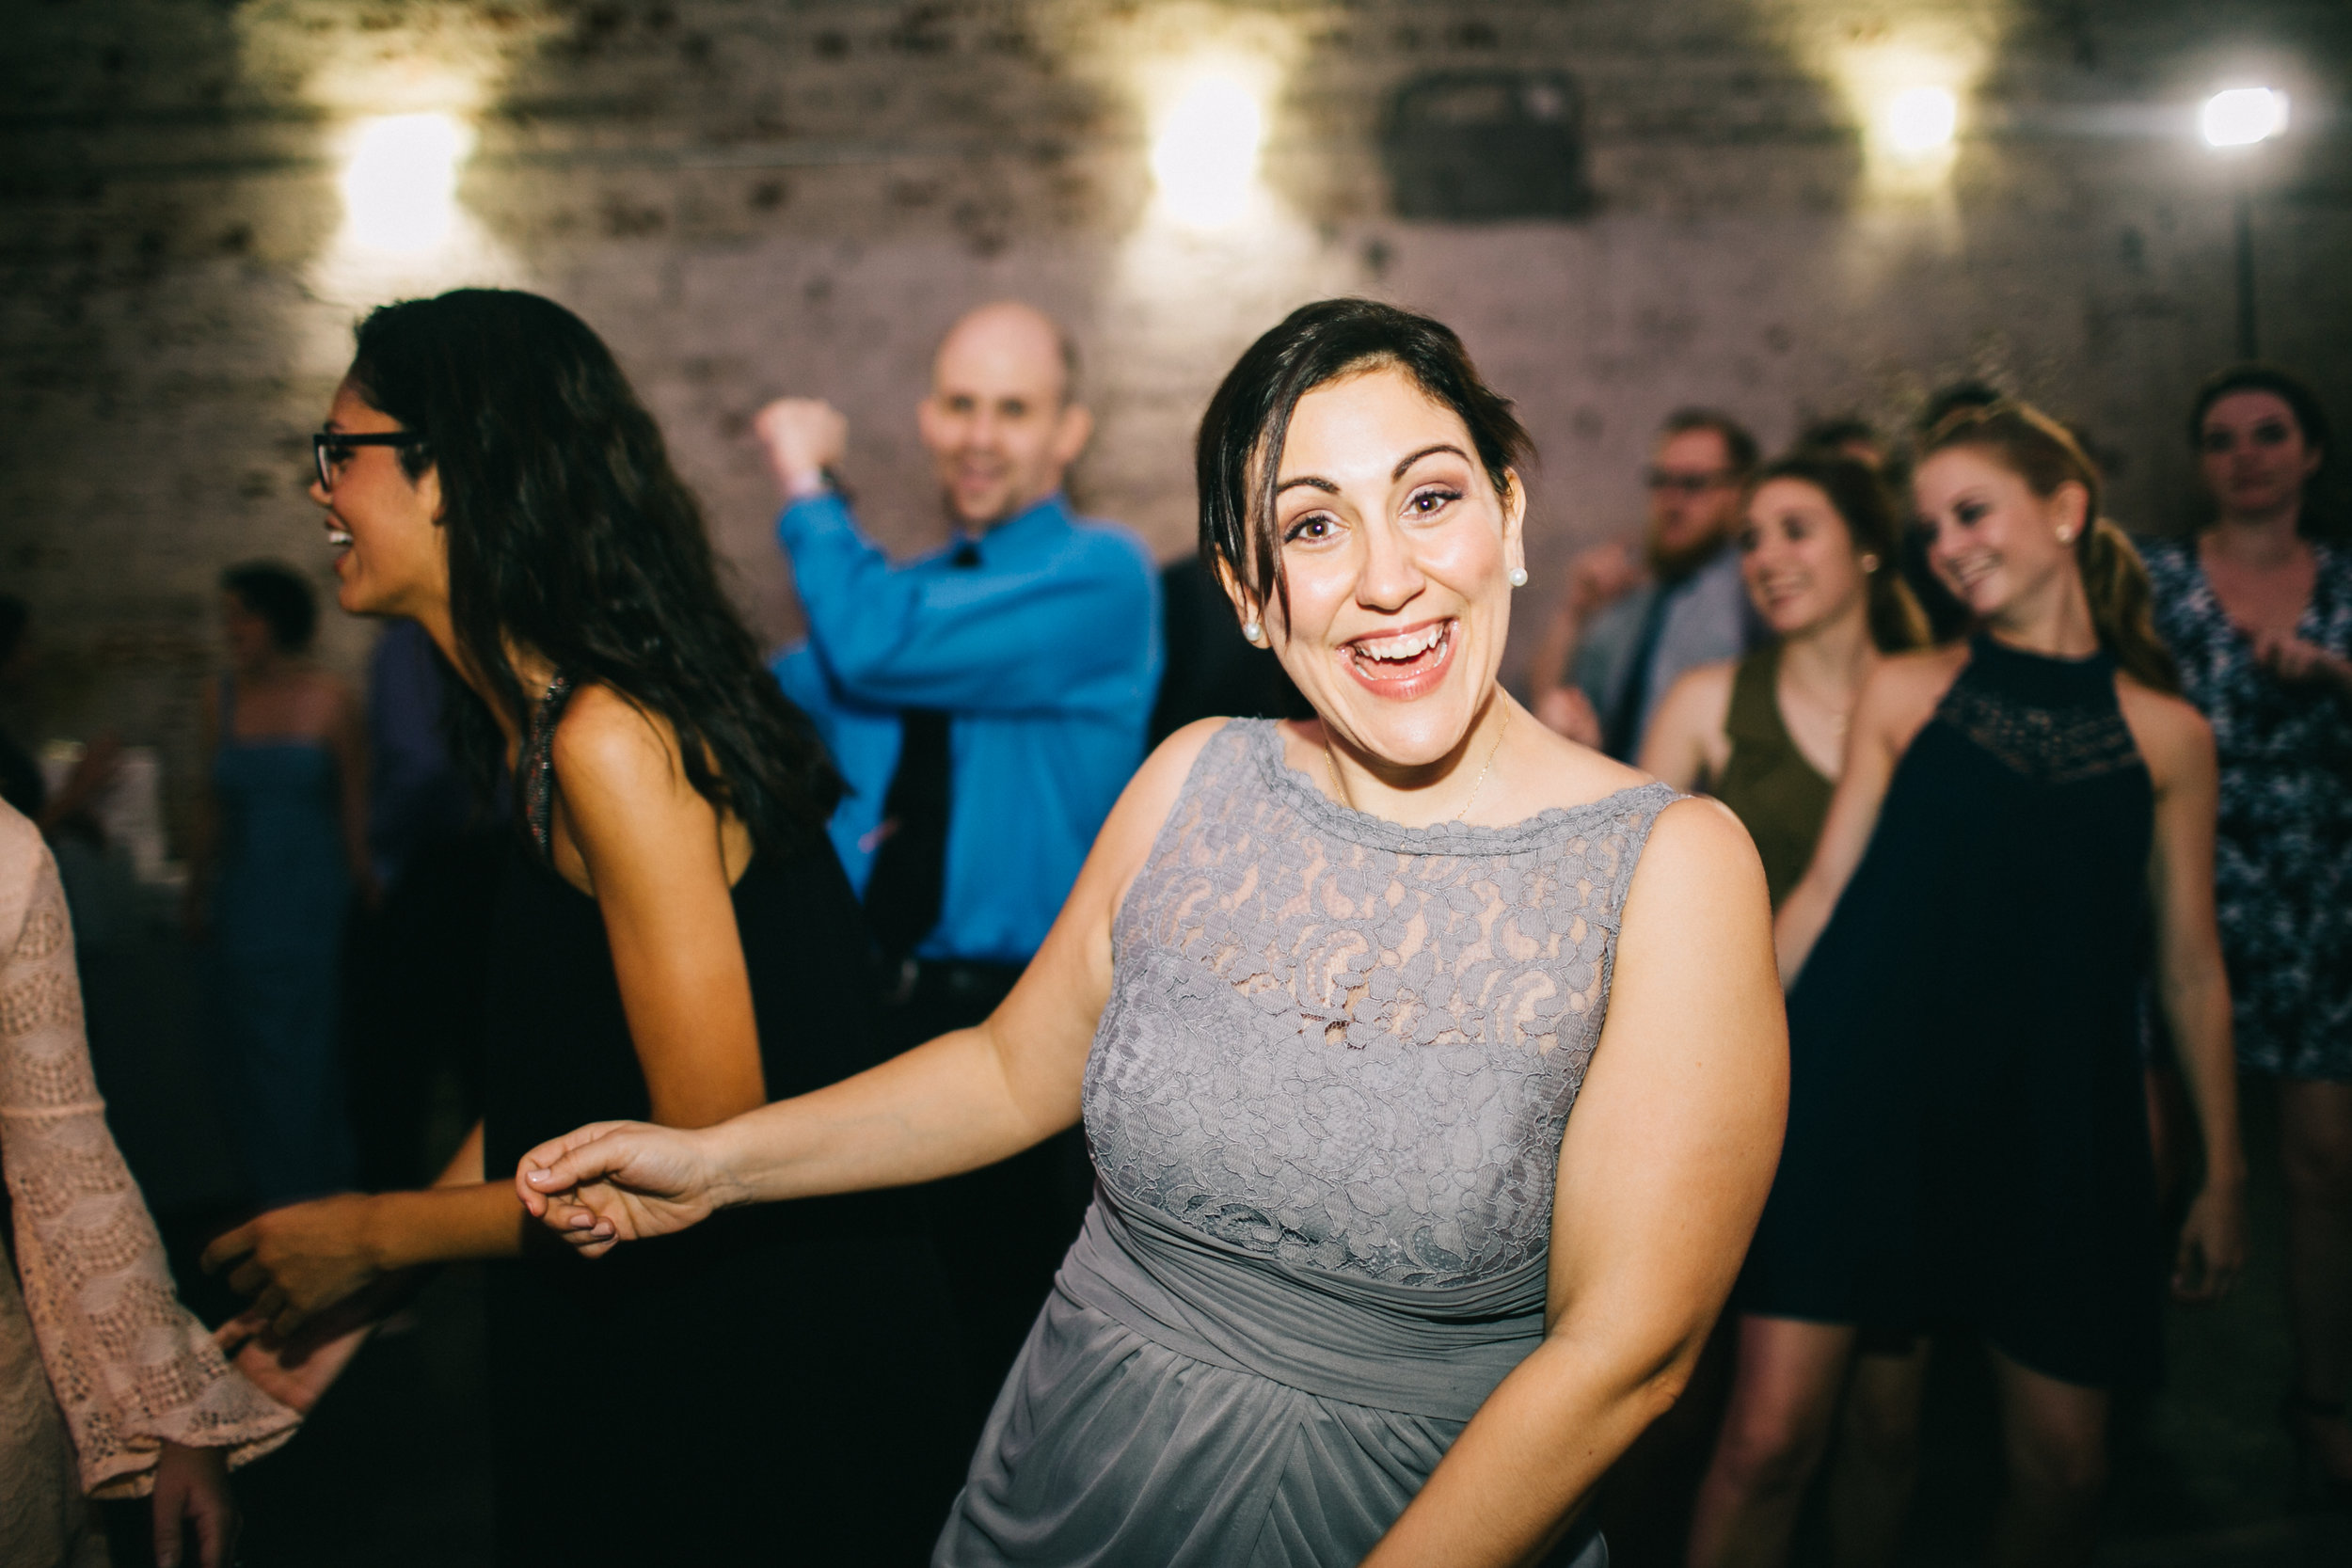 Tampa Industrial wedding at the Rialto Theater_208.jpg